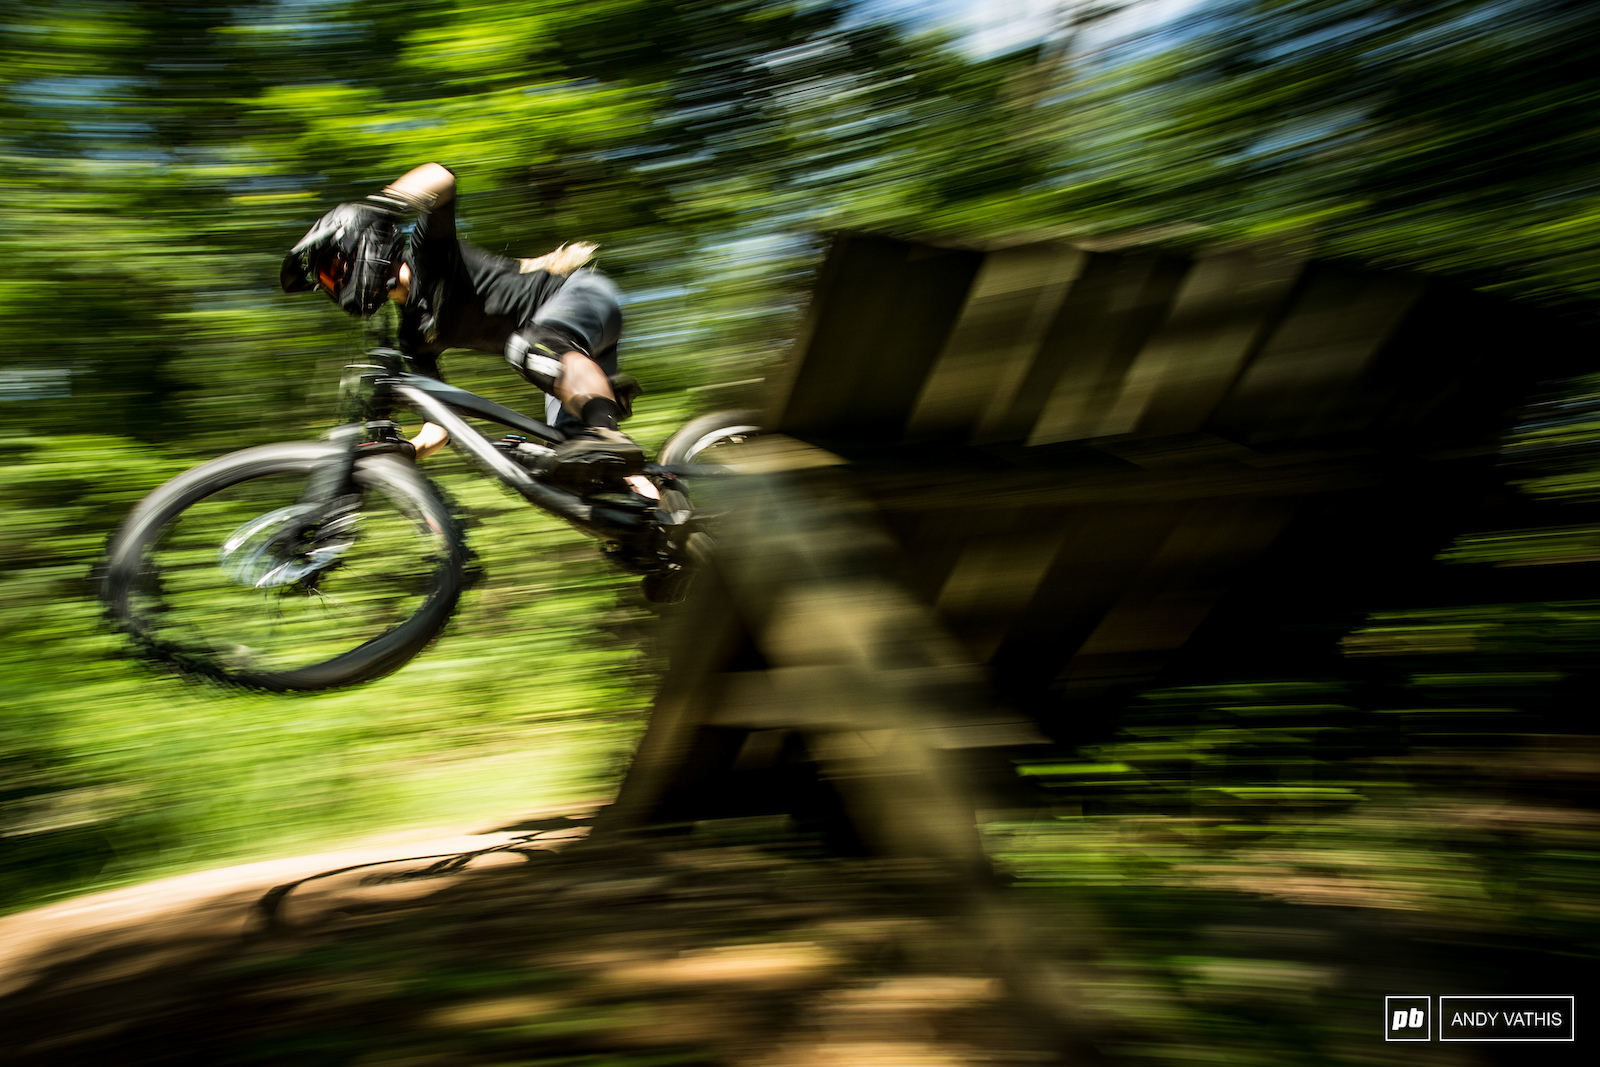 There s a good selection of wooden features to get wild one. Jamie flying out of the the wooden berm.